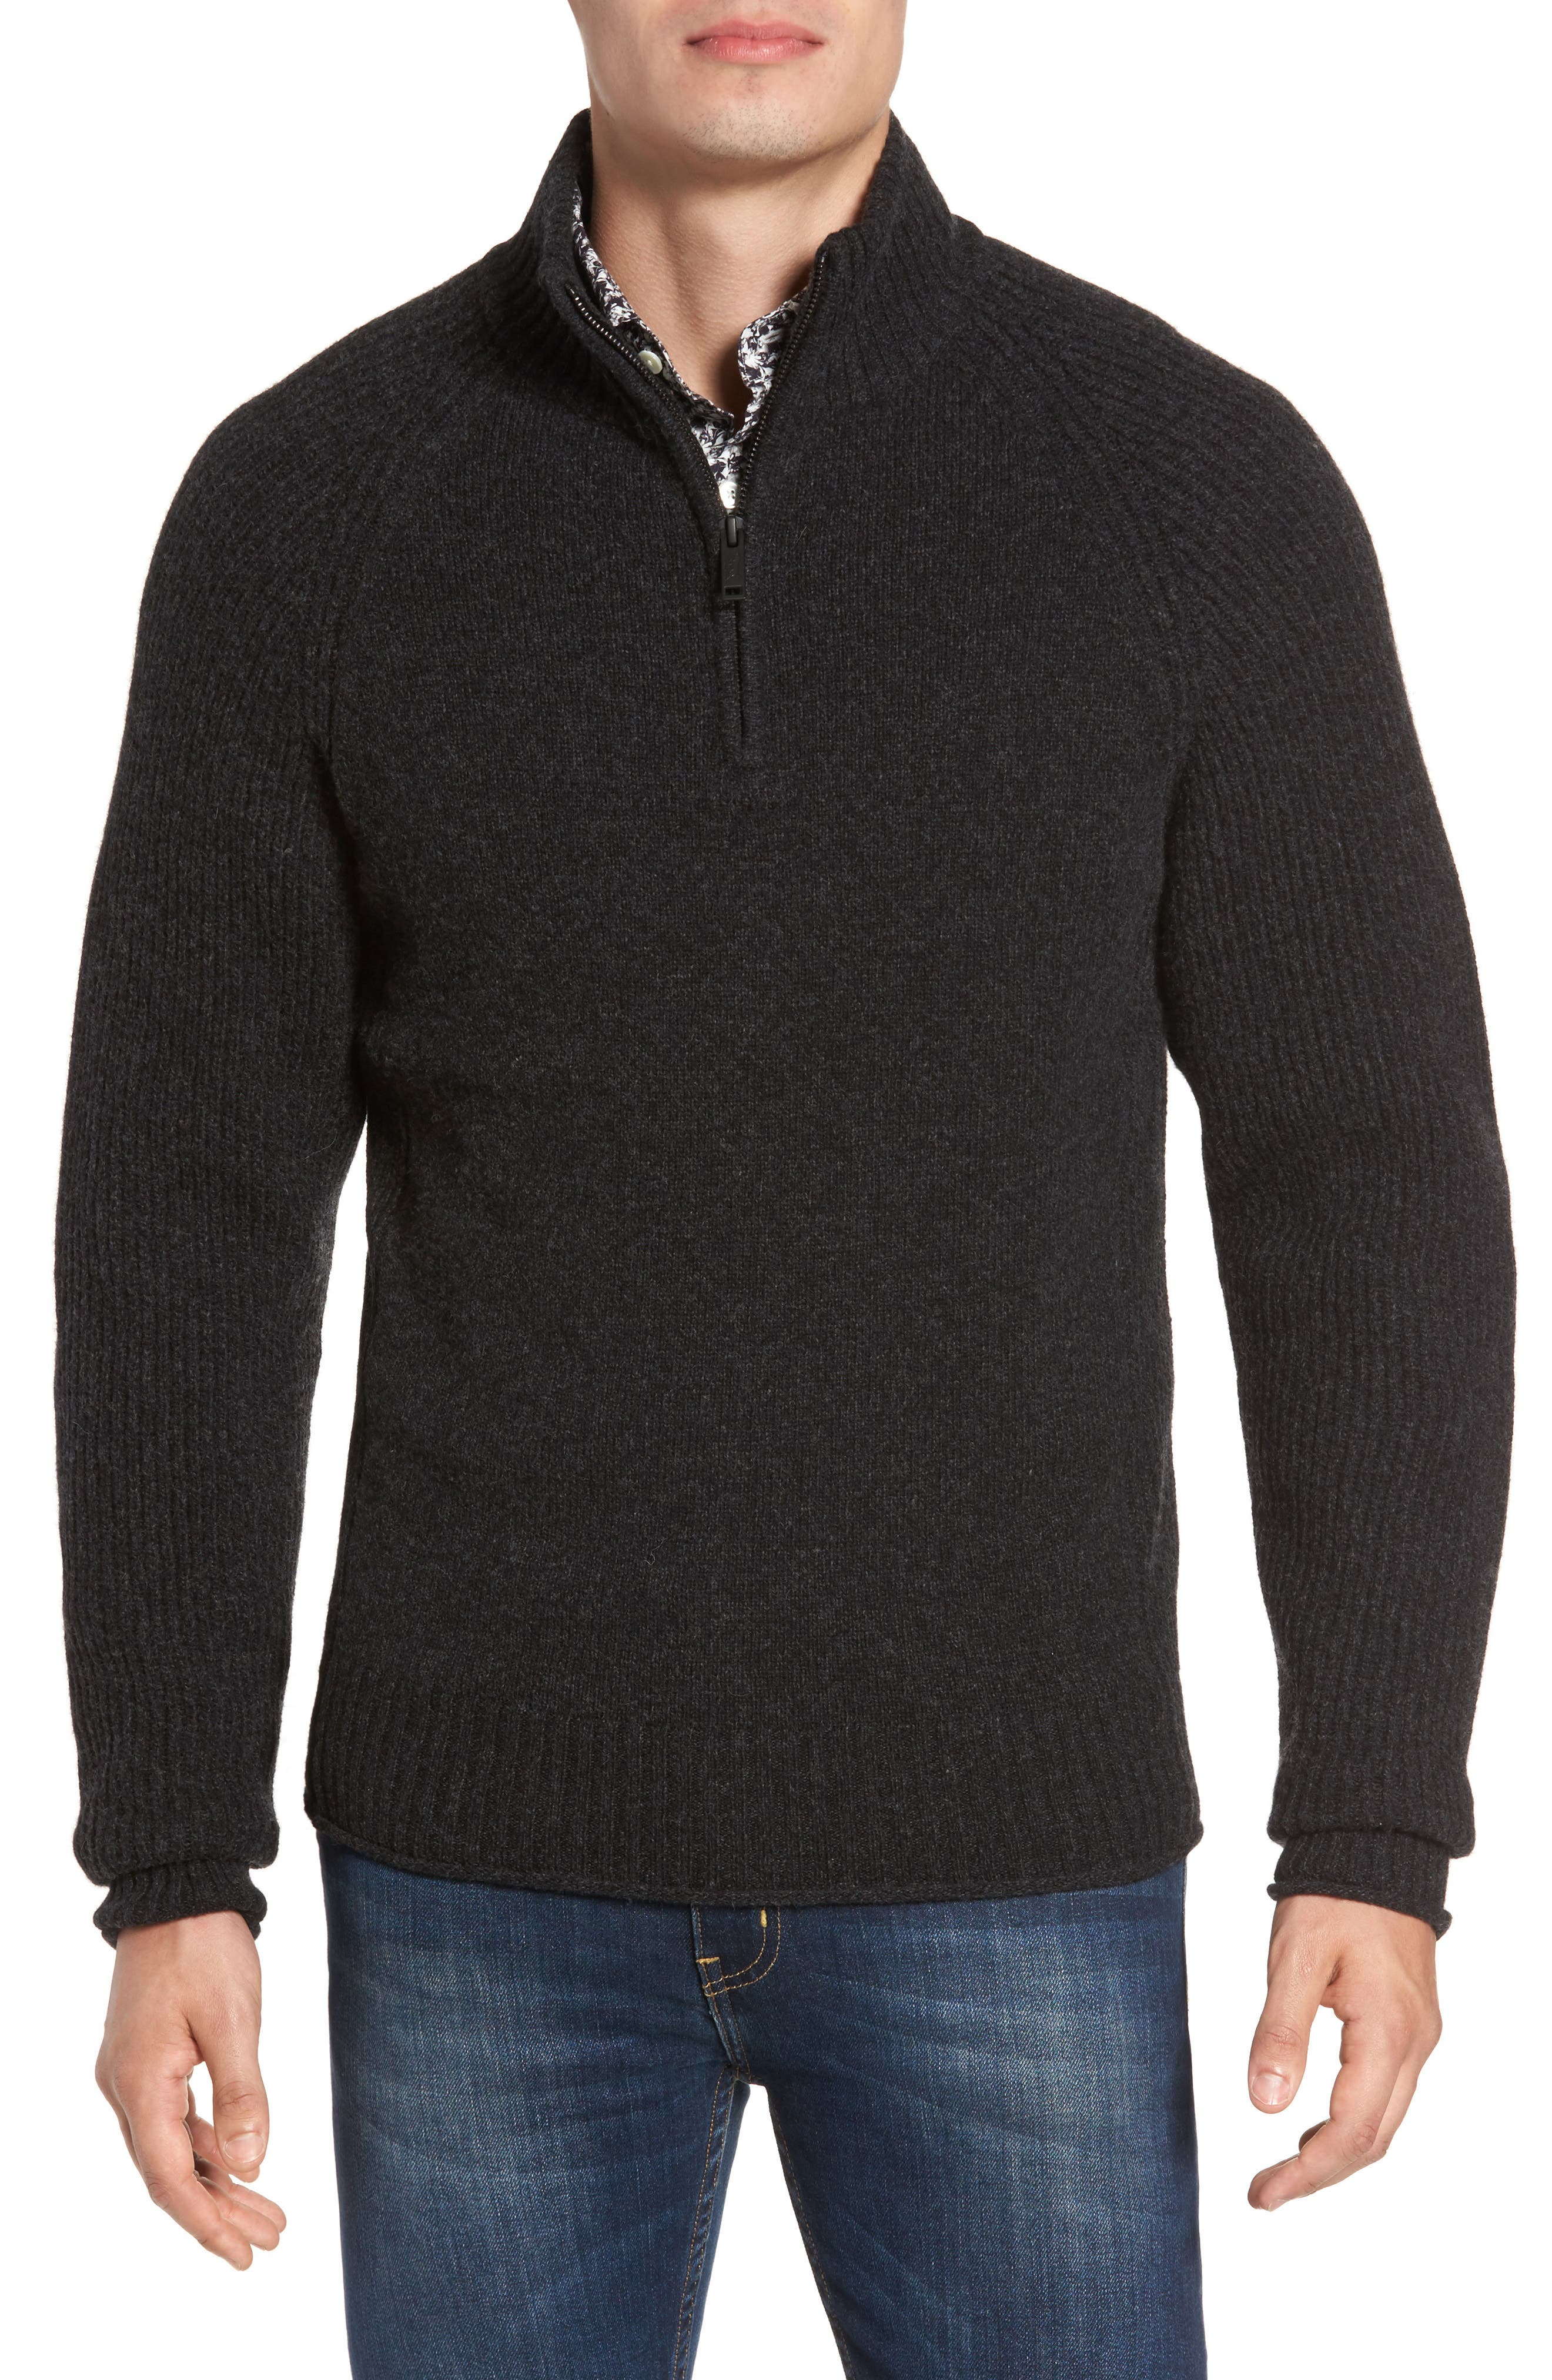 Stredwick Lambswool Sweater,                             Main thumbnail 1, color,